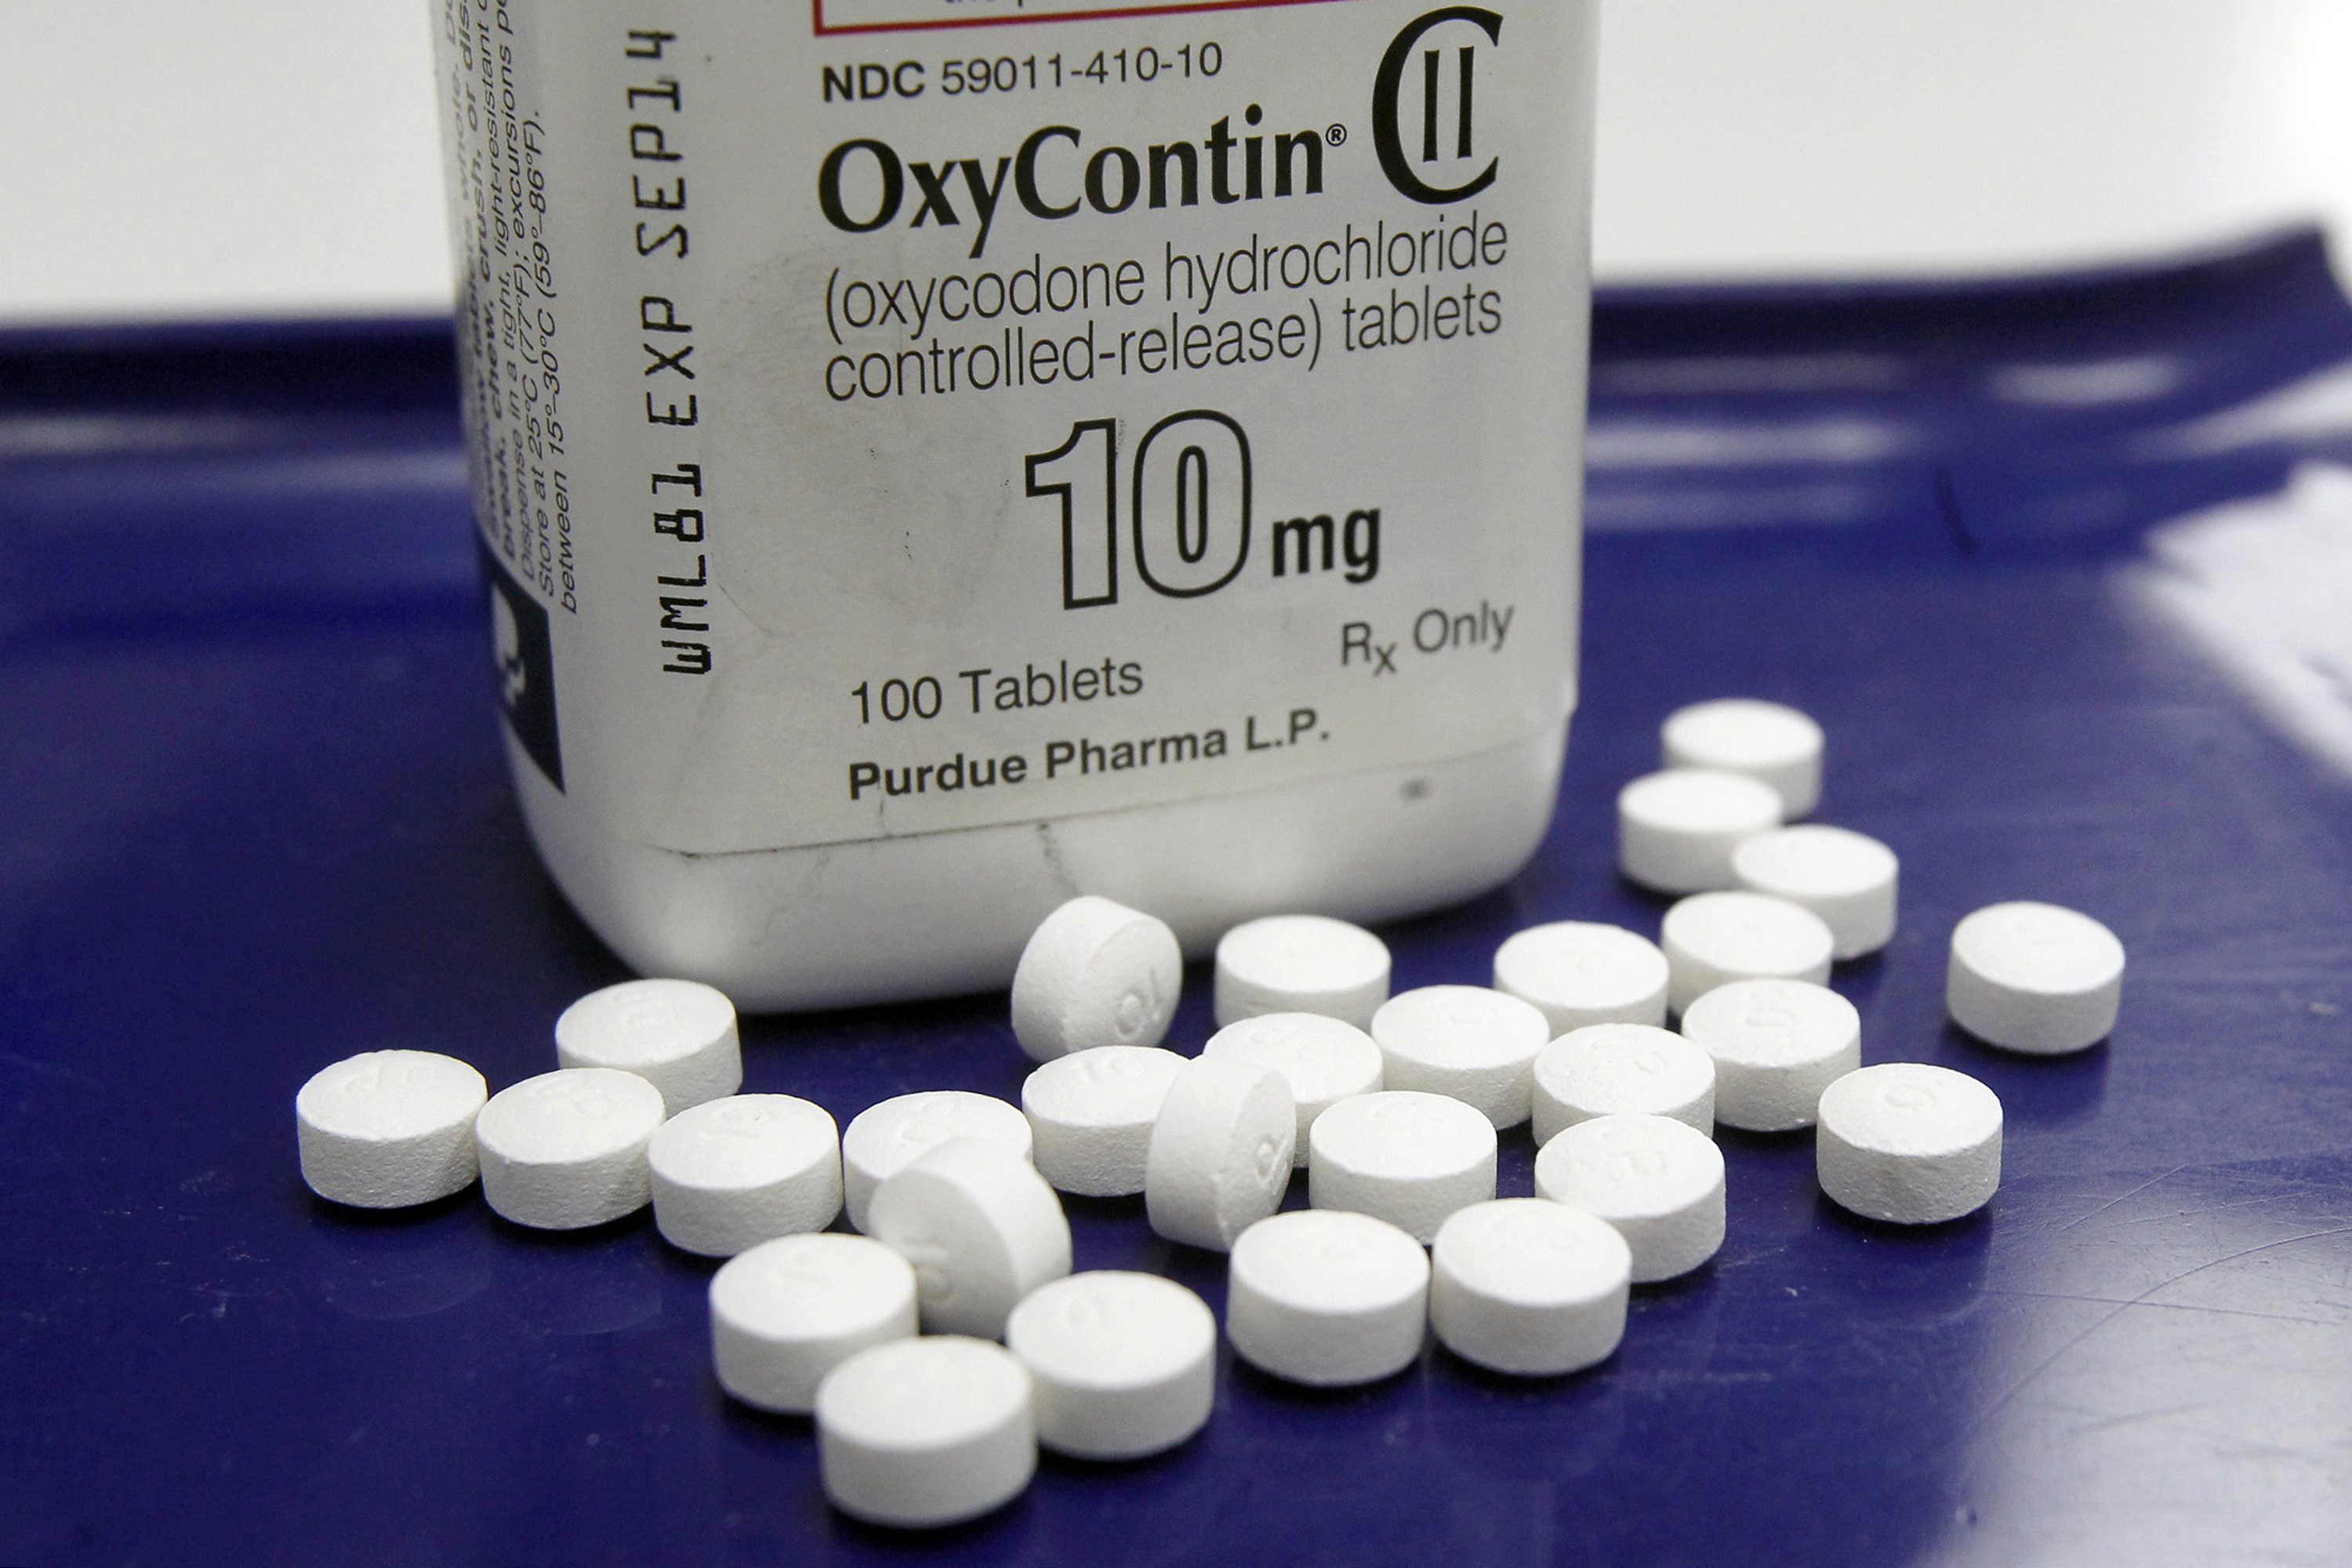 OxyContin pills are seen at a pharmacy in Montpelier, Vt. on Feb. 19, 2013.